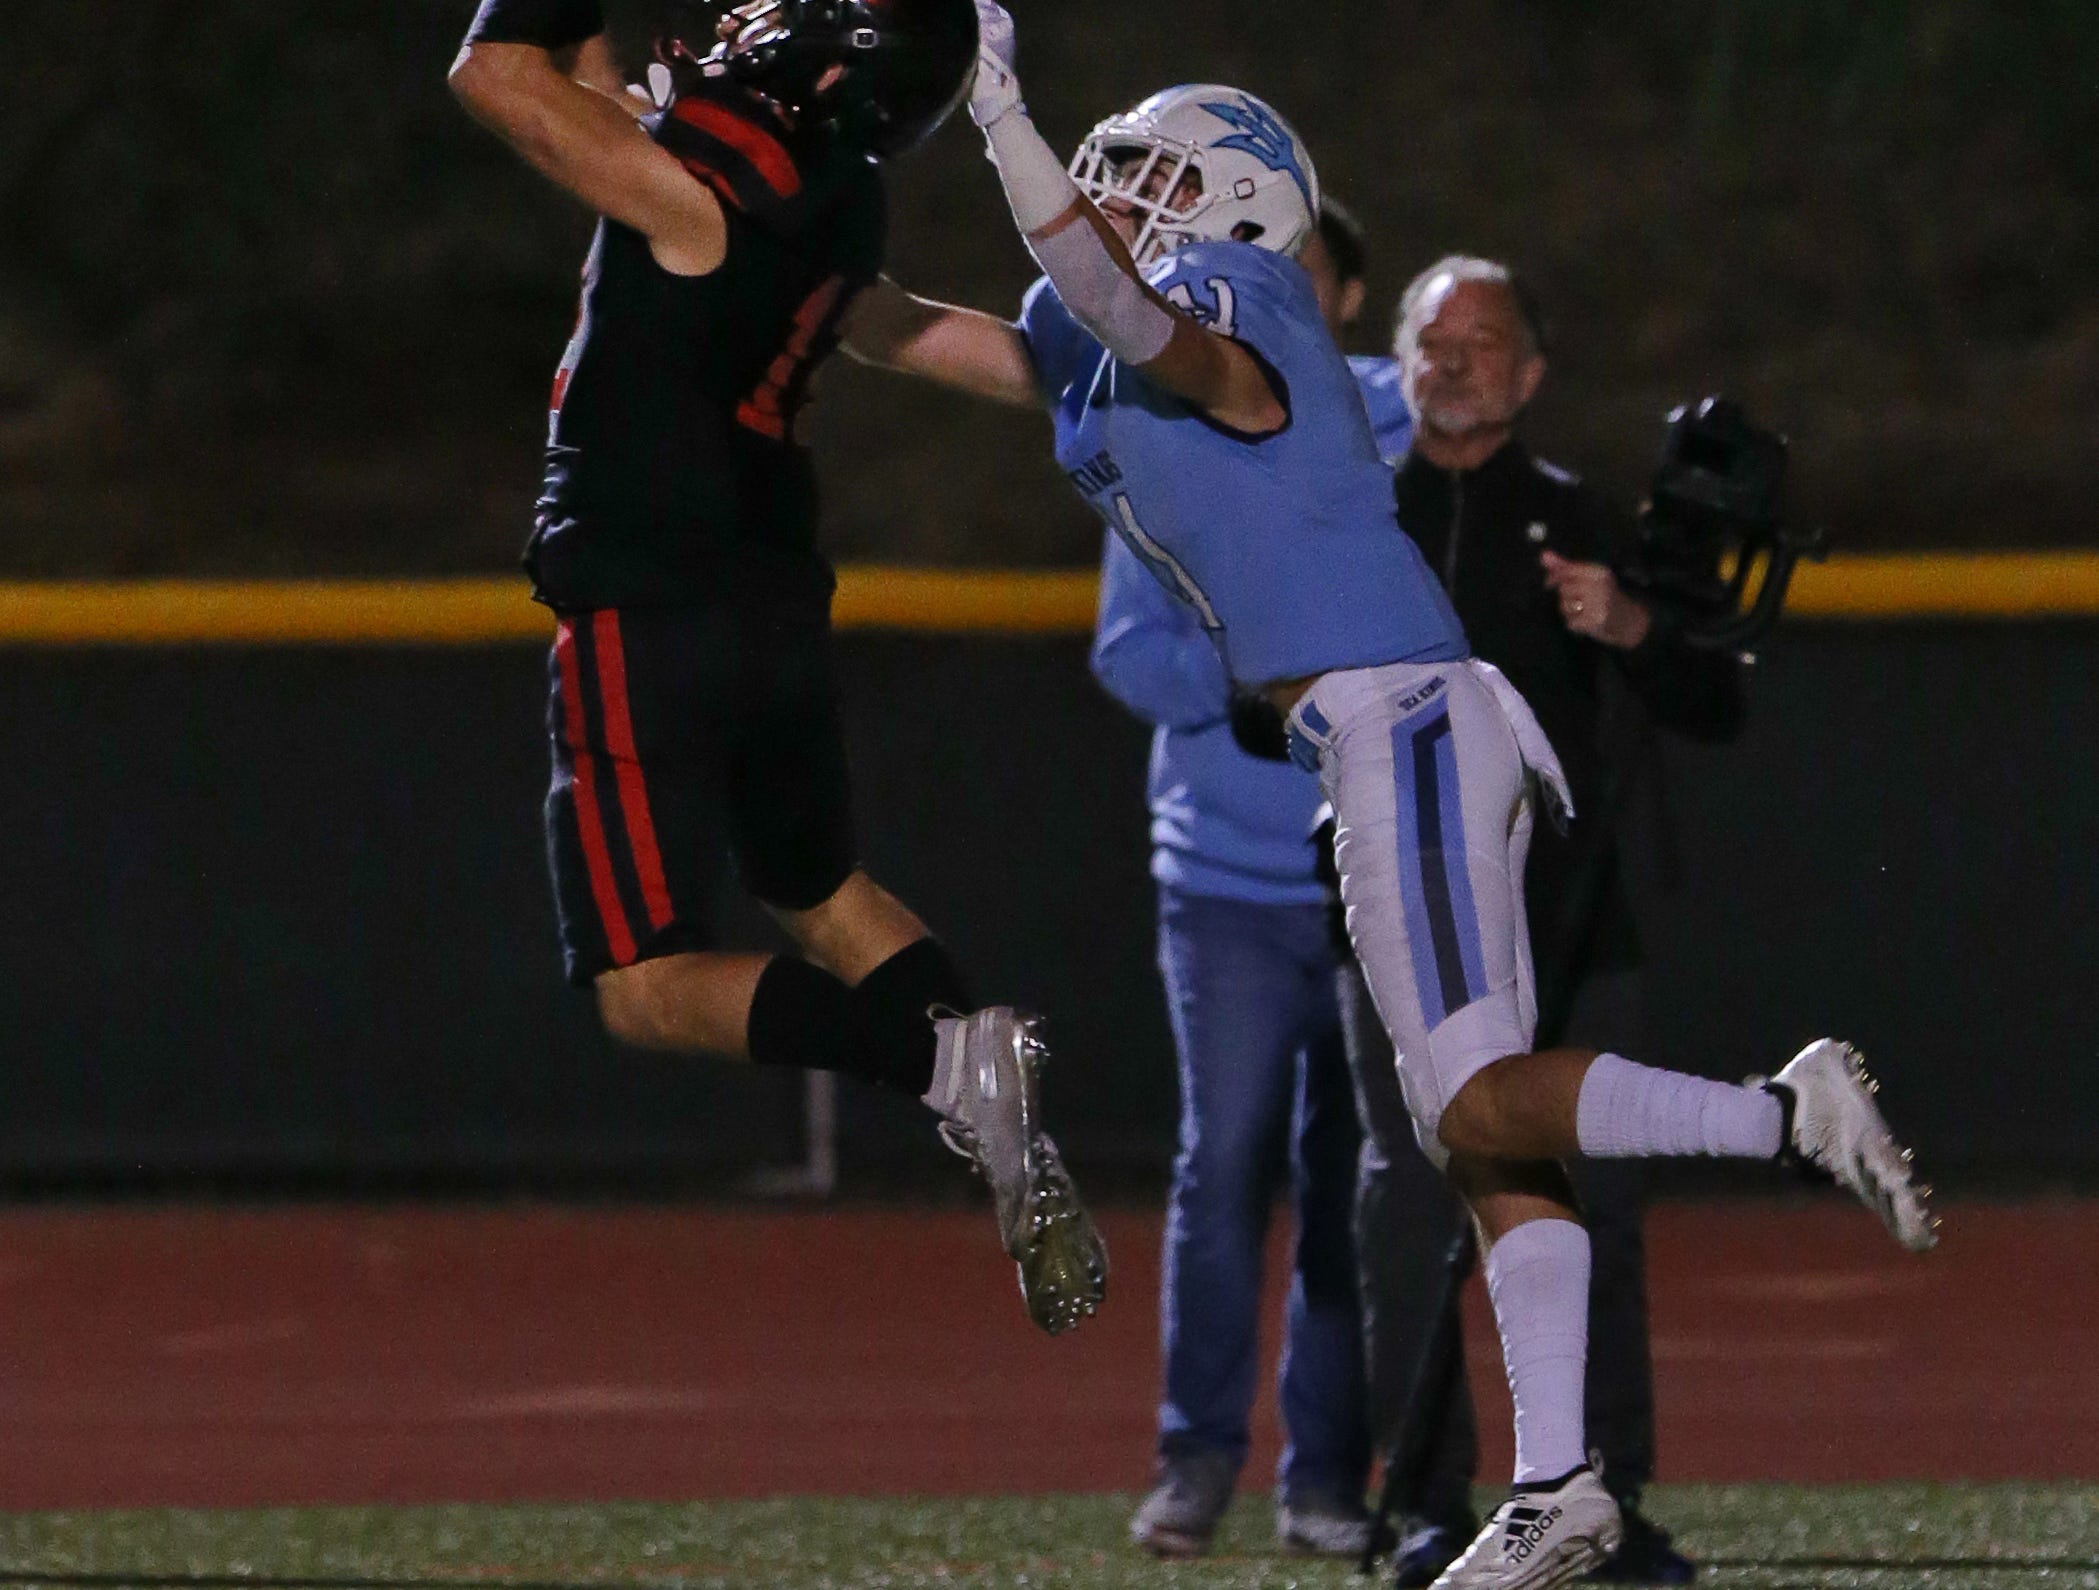 Grace Brethren's Troy Hothan makes an interception in front of Corona del Mar's Bradley Schlom in the end zone to seal the Lancers' 26-14 win in the CIF-SS Division 4 championship game Saturday night at Royal High.